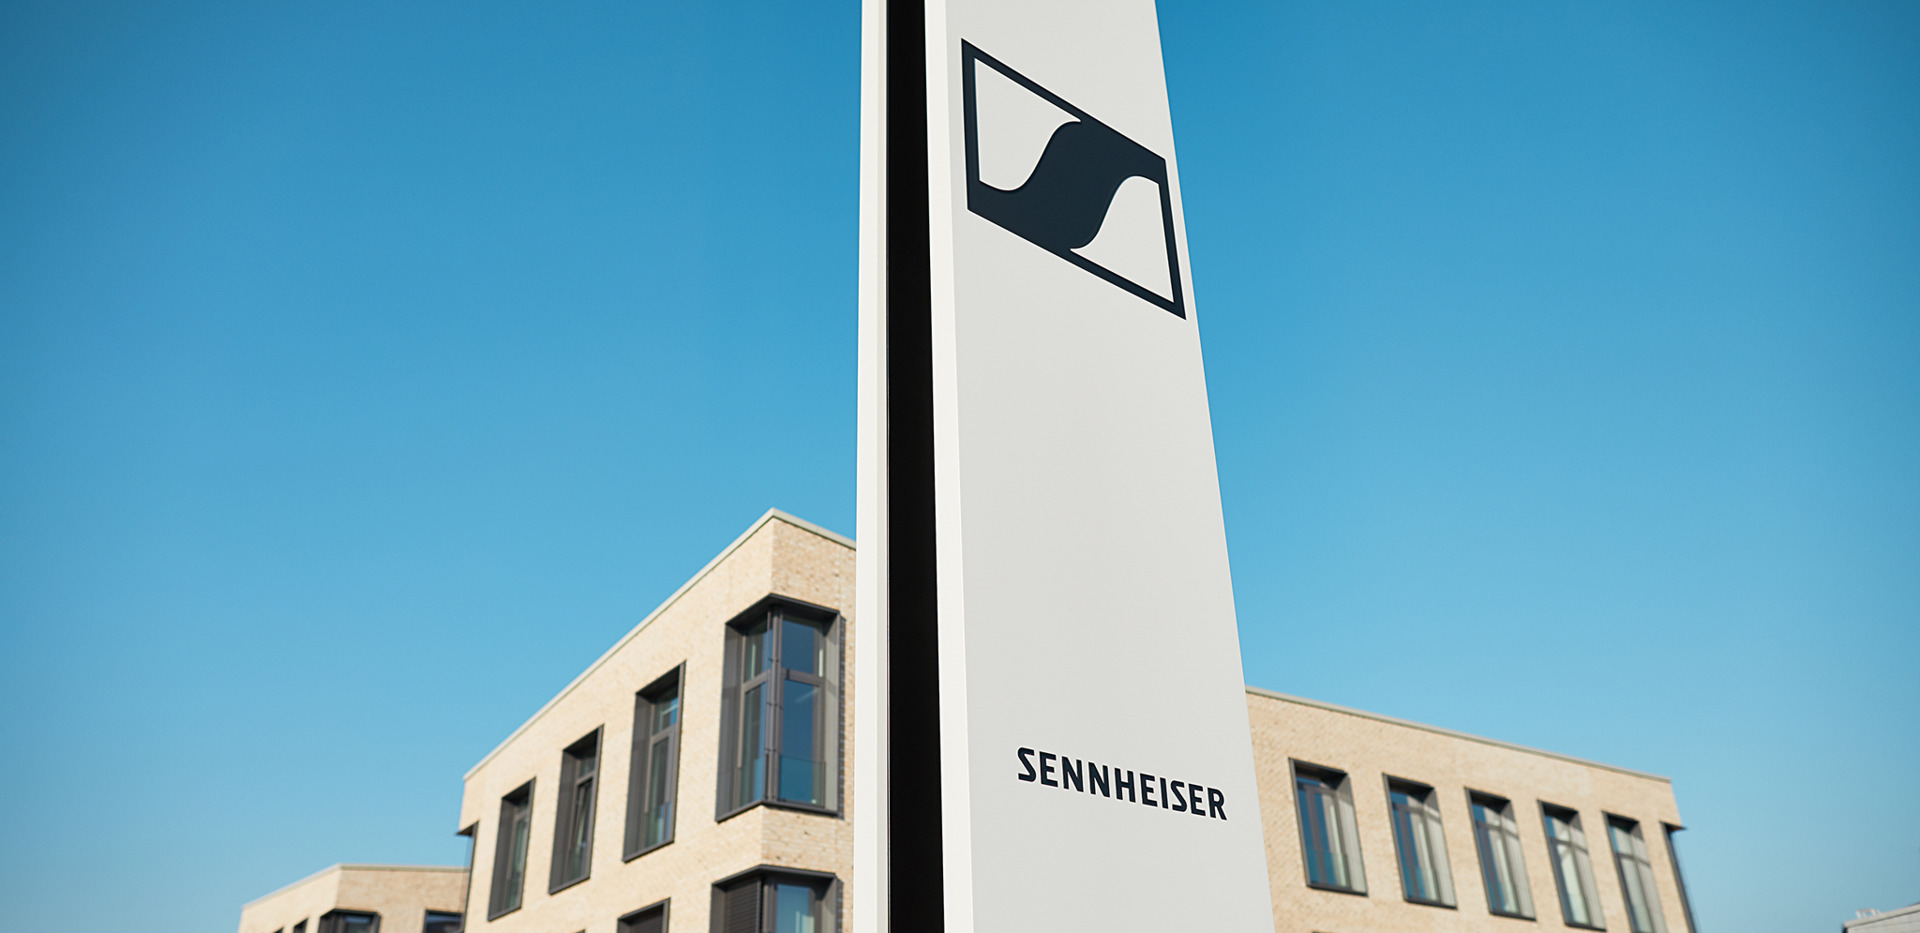 Sennheiser presents 2019 results and announces job cuts